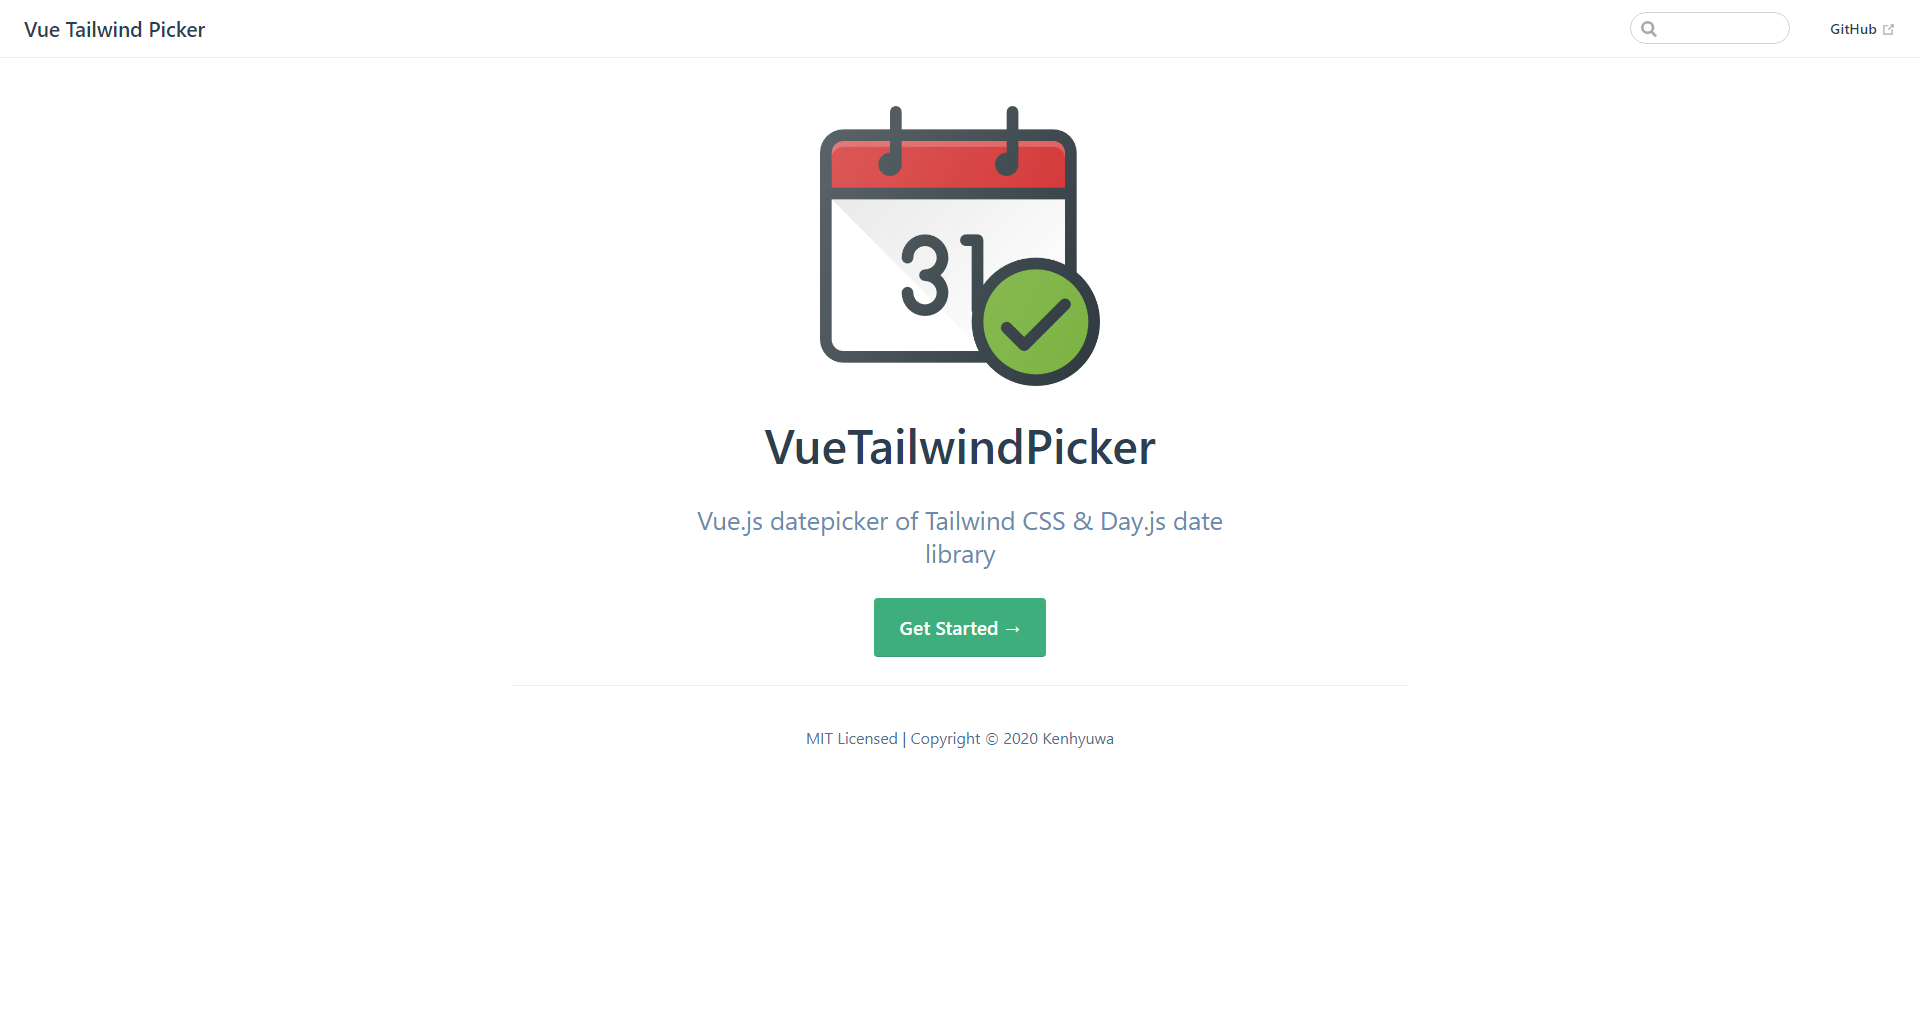 Vue tailwind picker